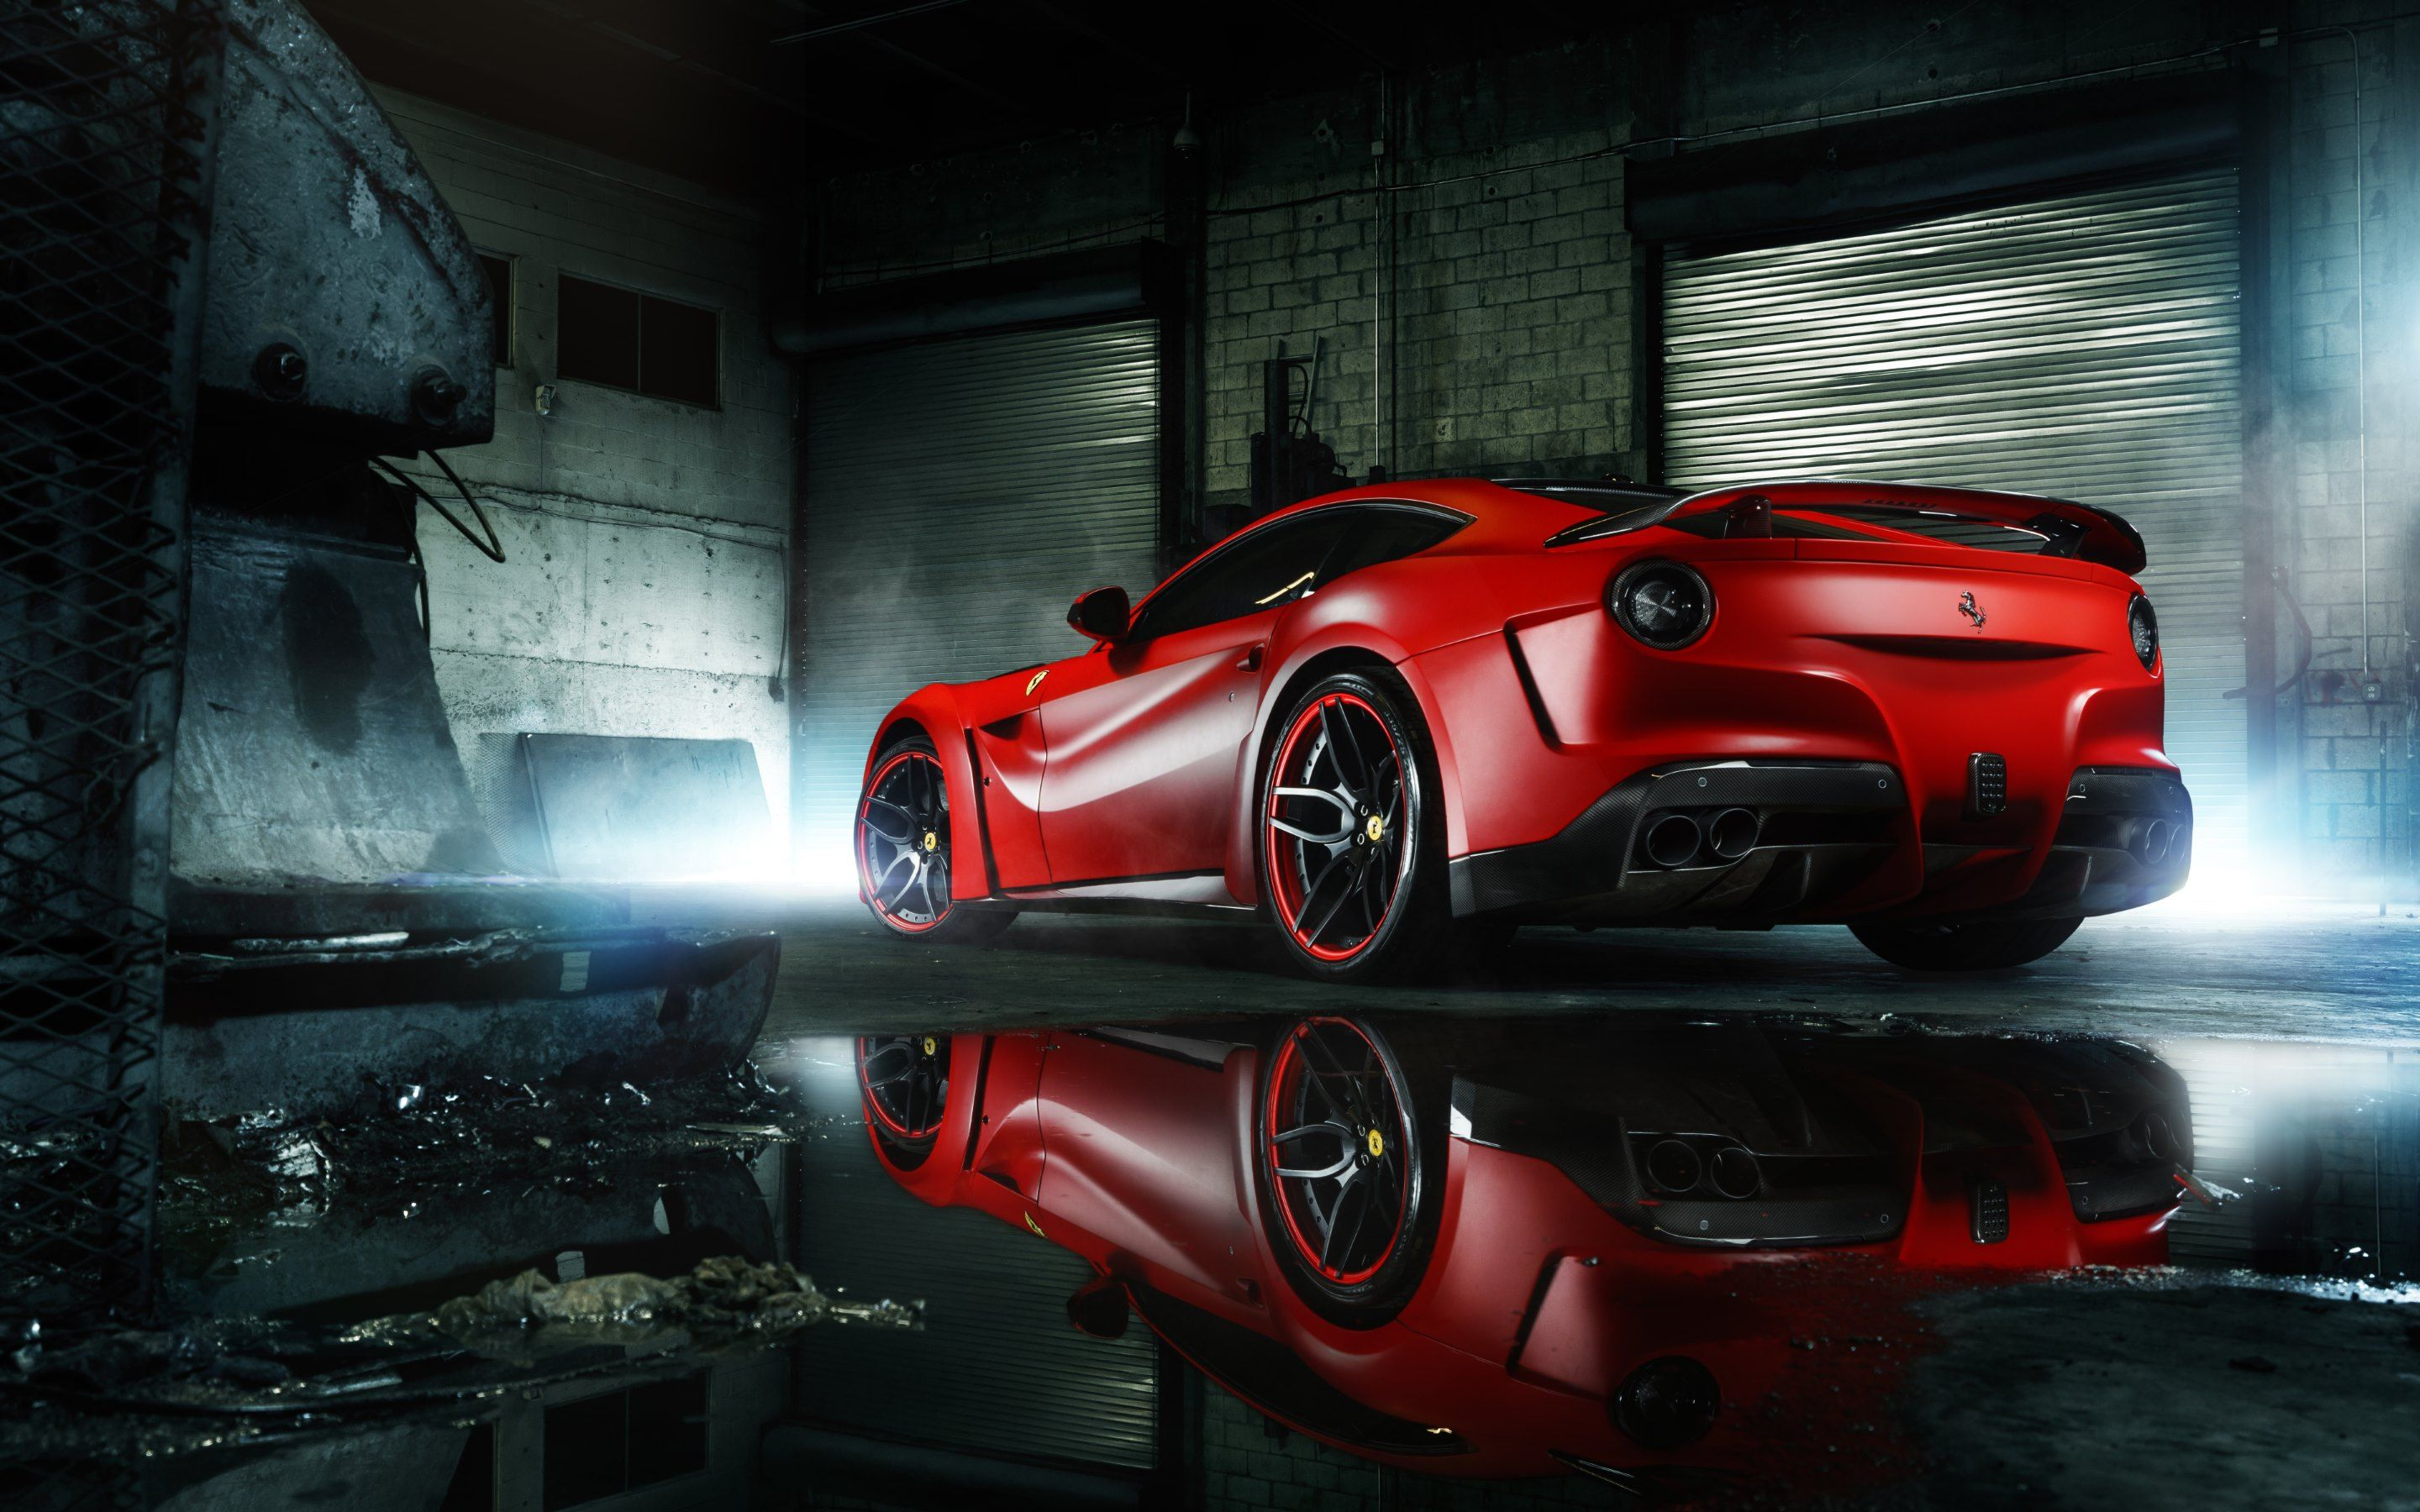 Ferrari Wallpaper For Android oHG Cars Ferrari